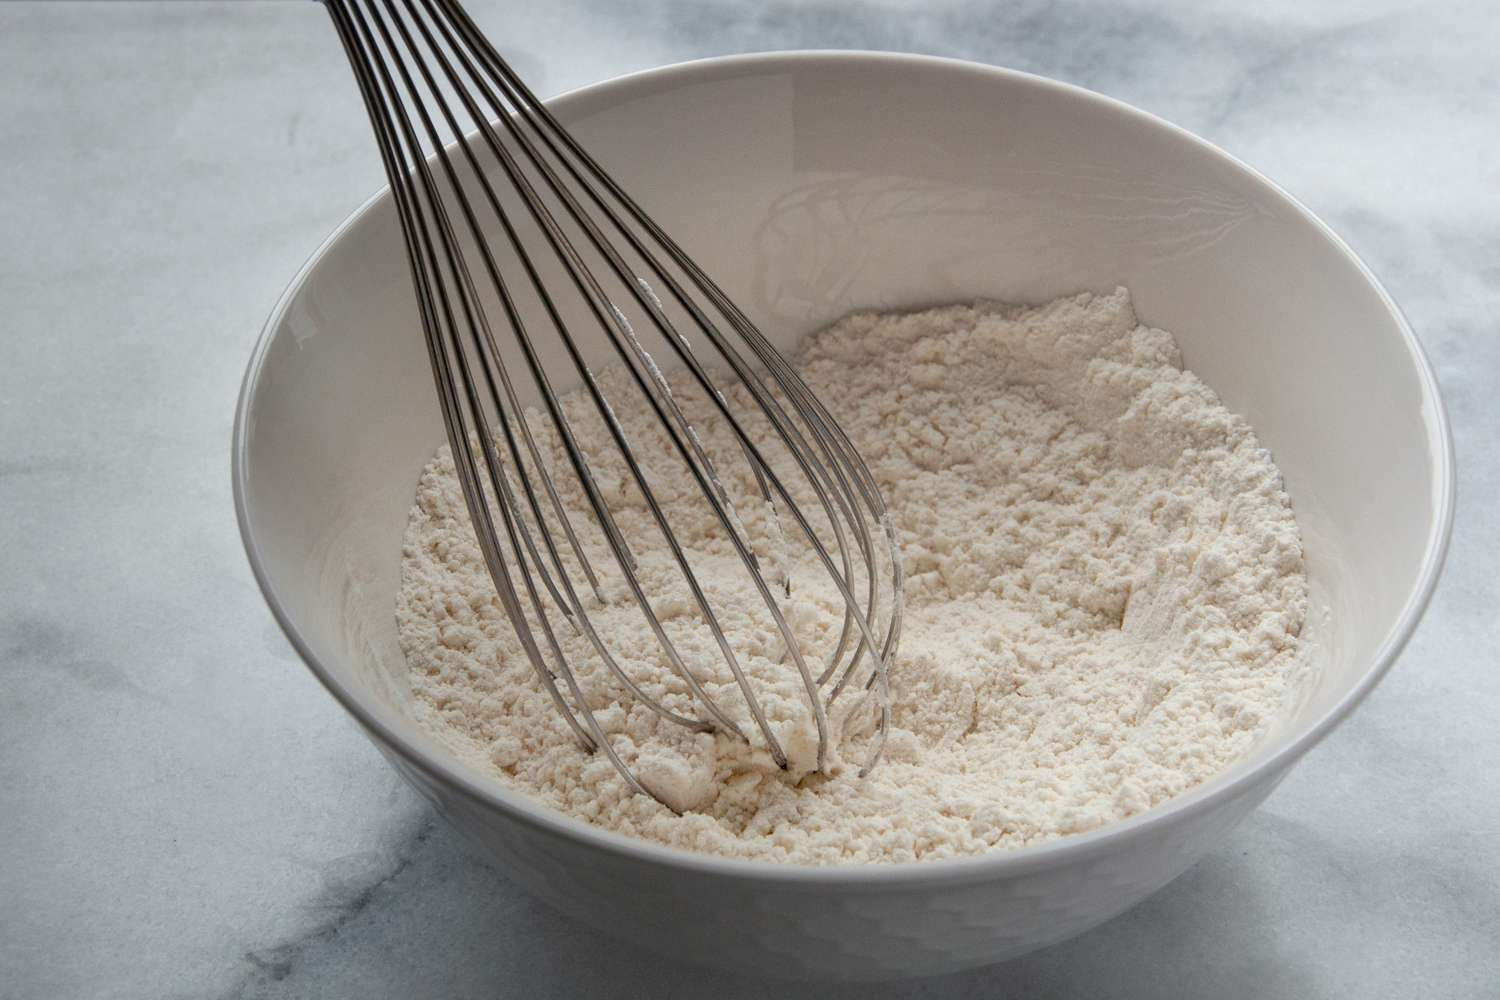 Flour and baking powder in a white mixing bowl, metal whisk